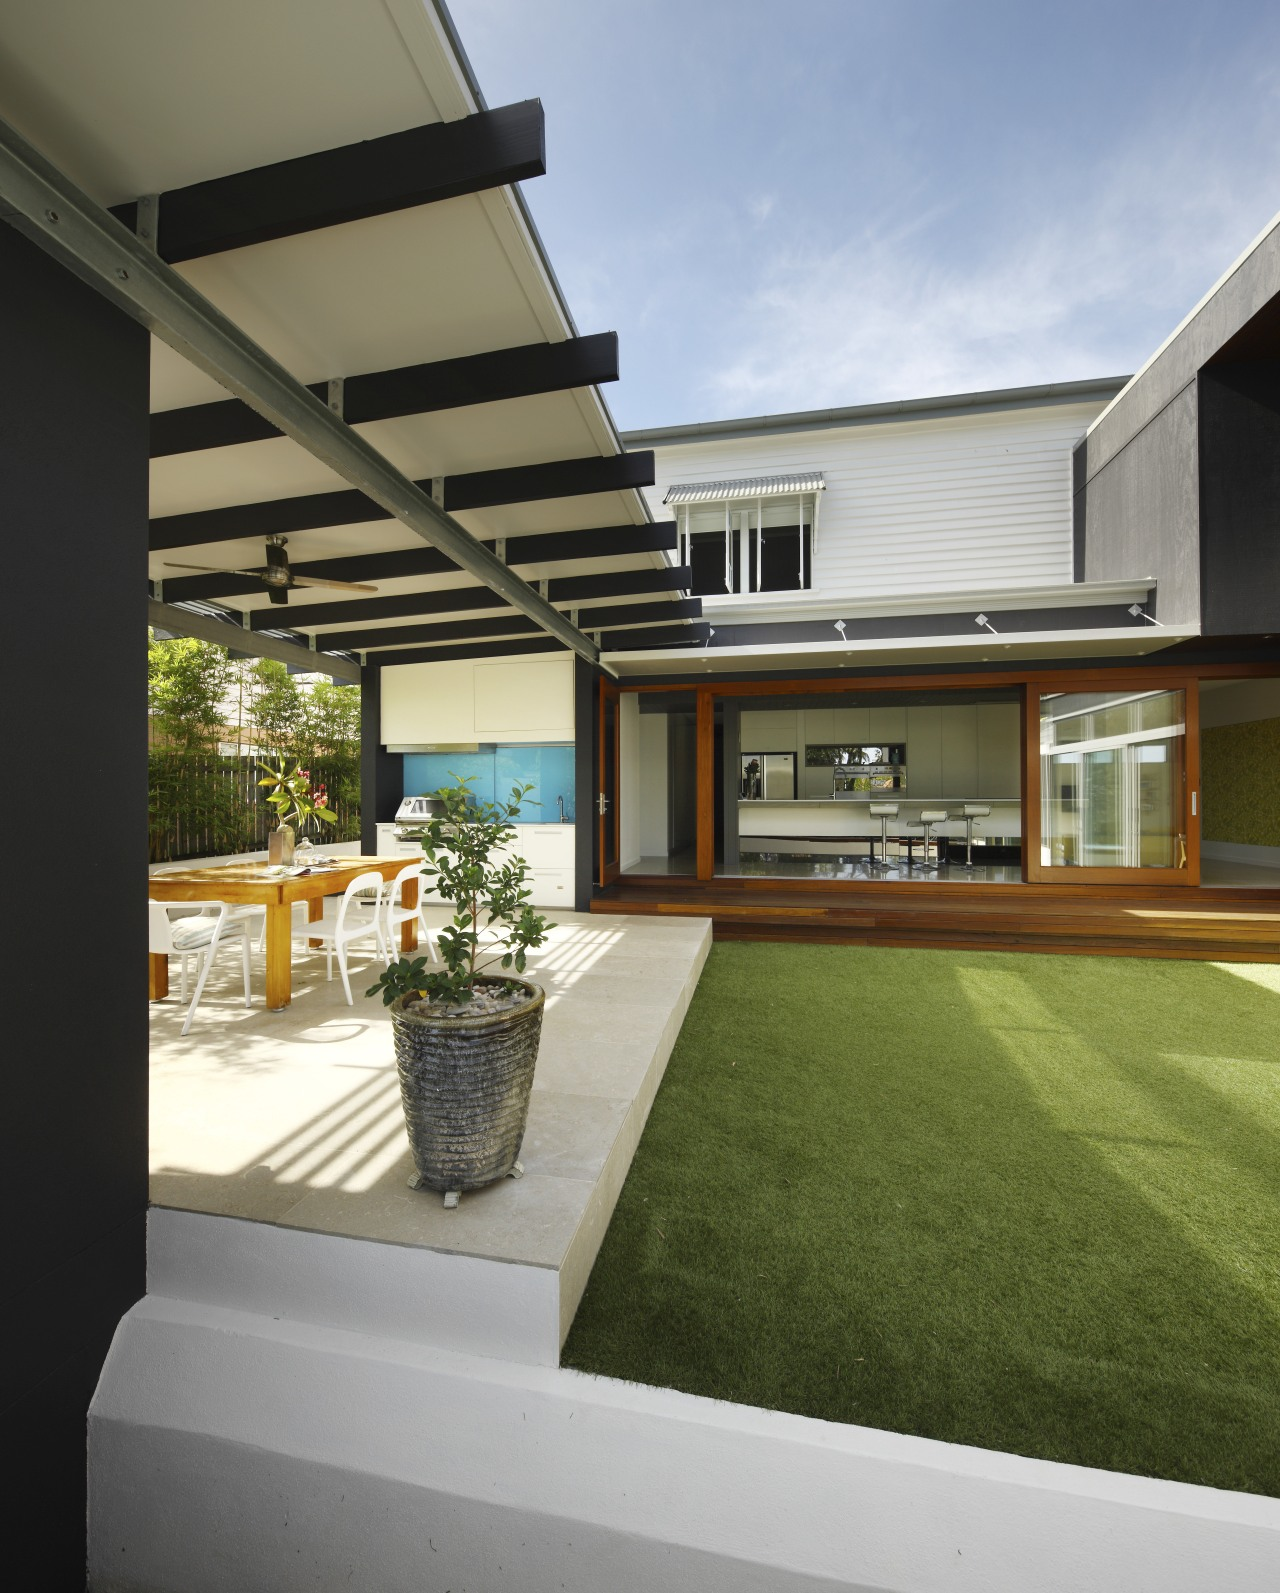 This modern extension houses two kitchens - one architecture, backyard, estate, facade, home, house, interior design, property, real estate, residential area, roof, window, yard, gray, brown